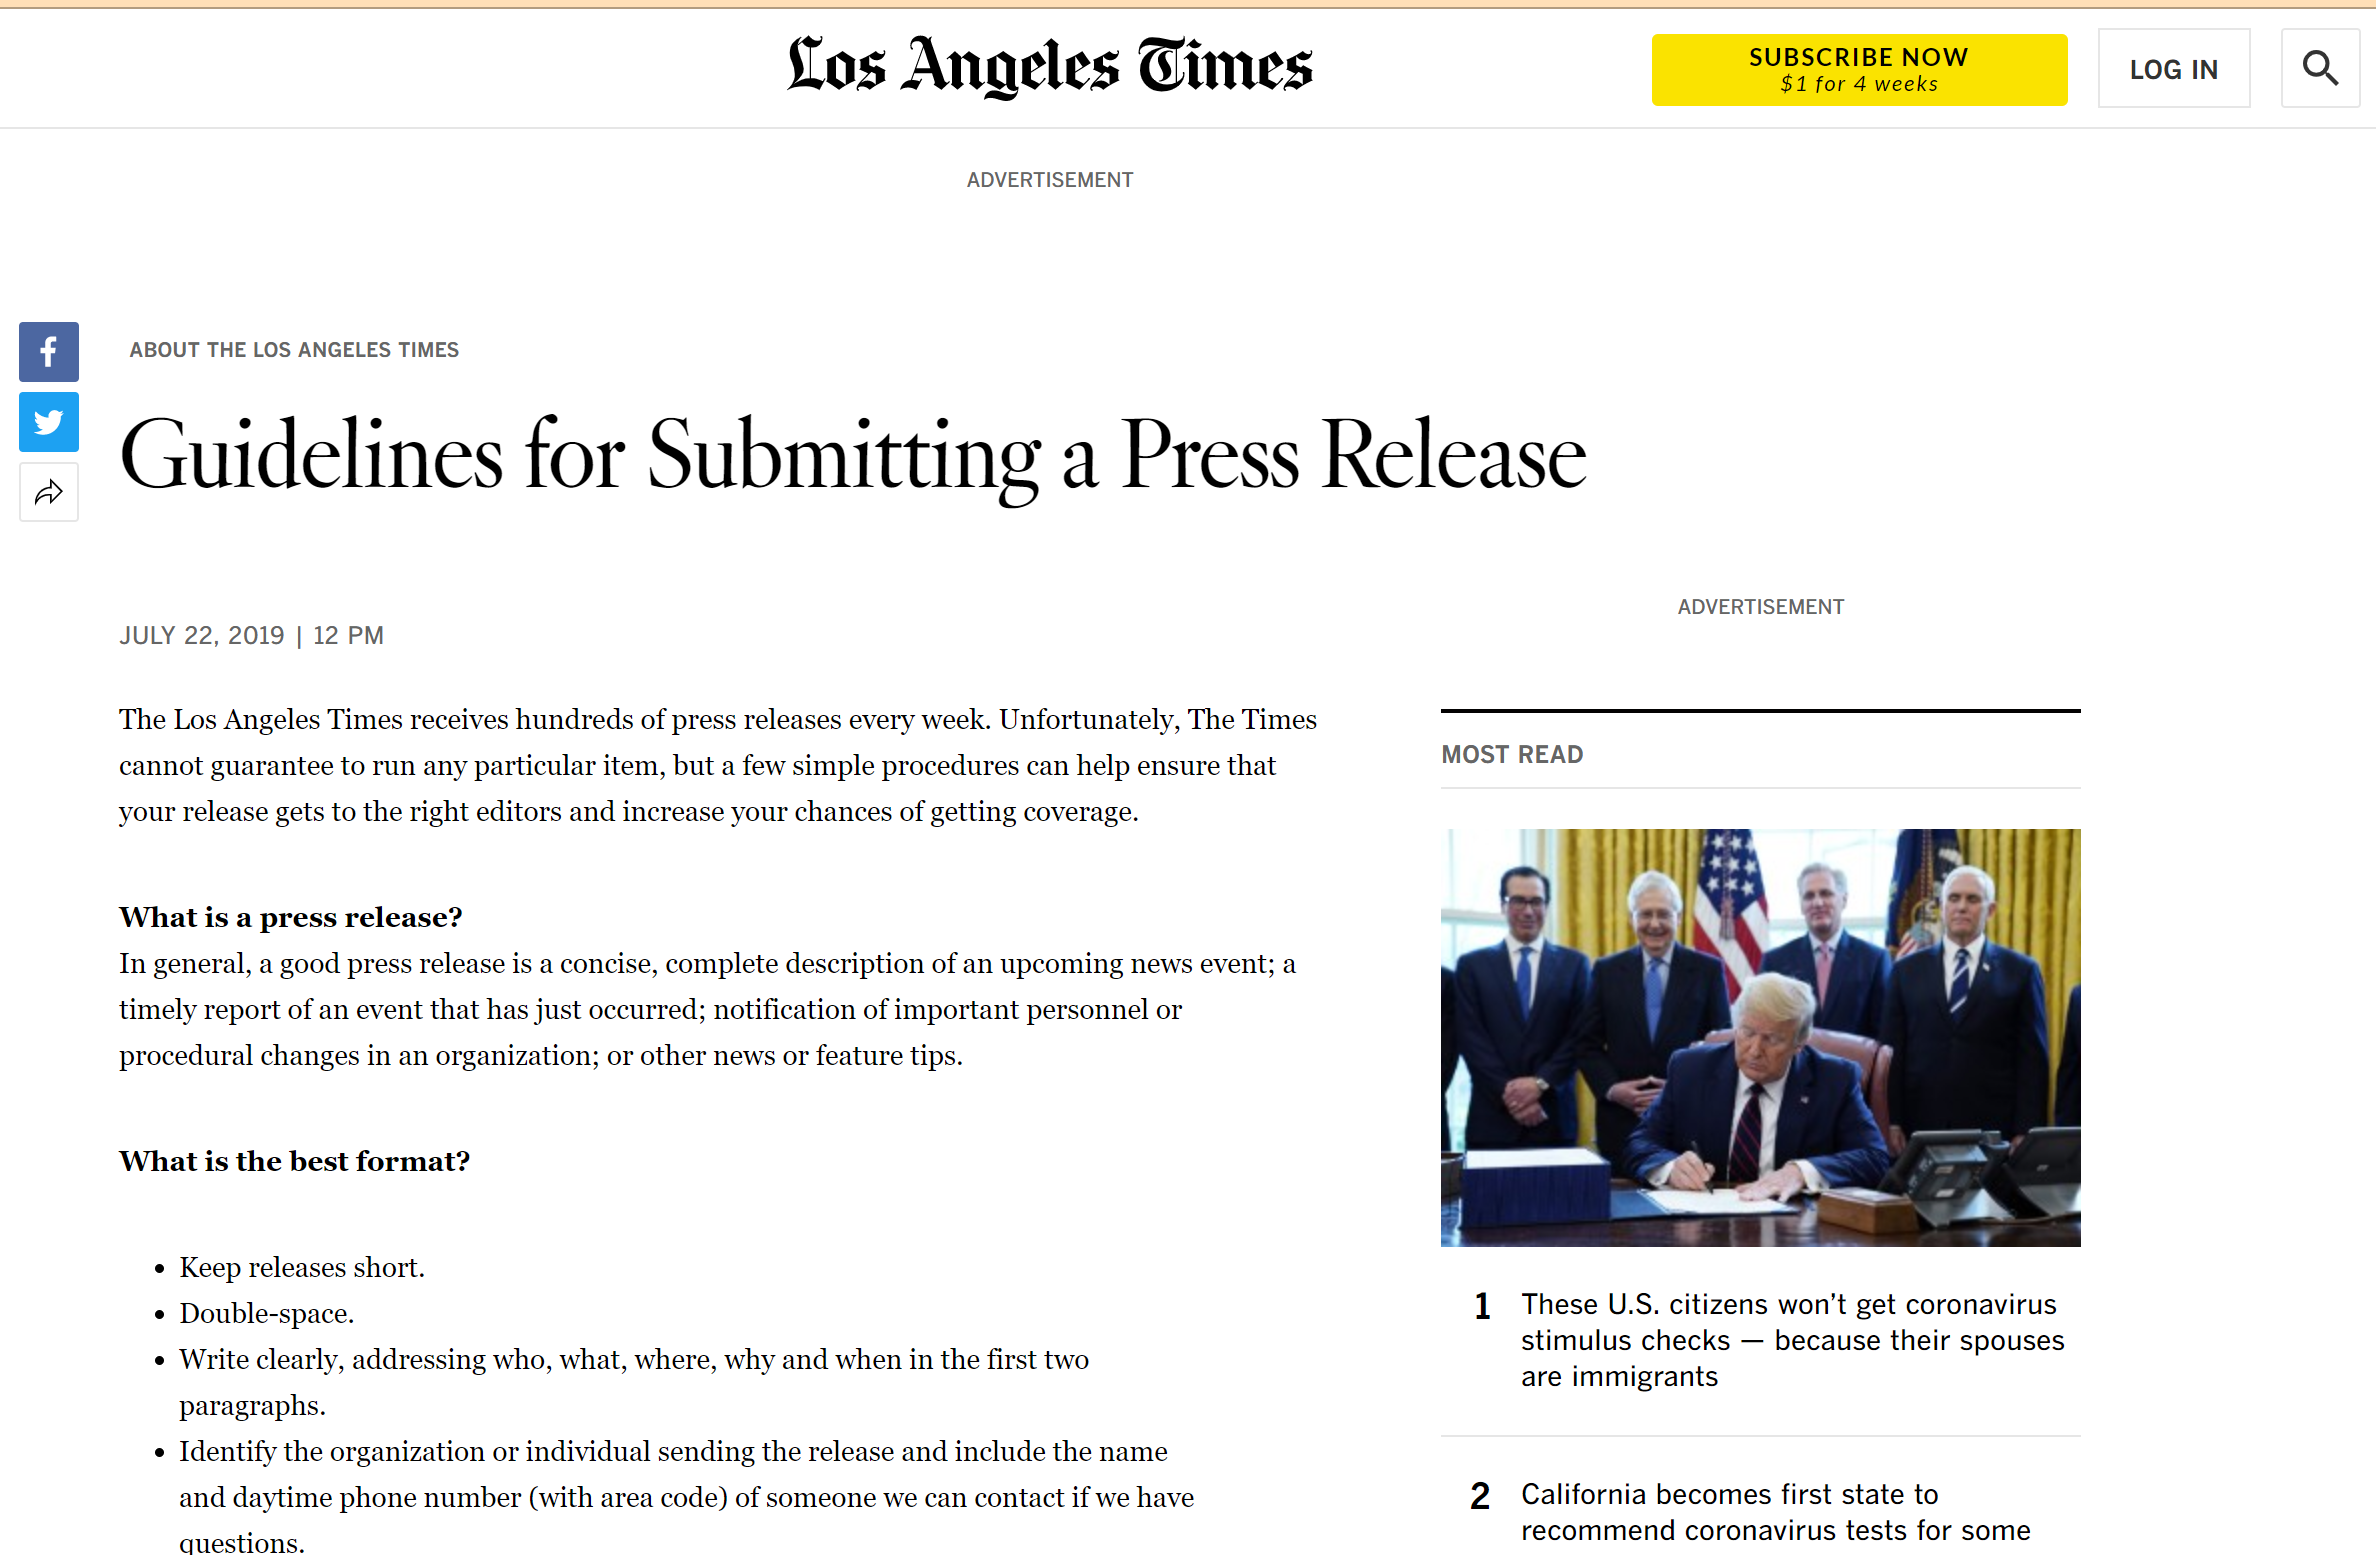 Guidelines for submitting a press release